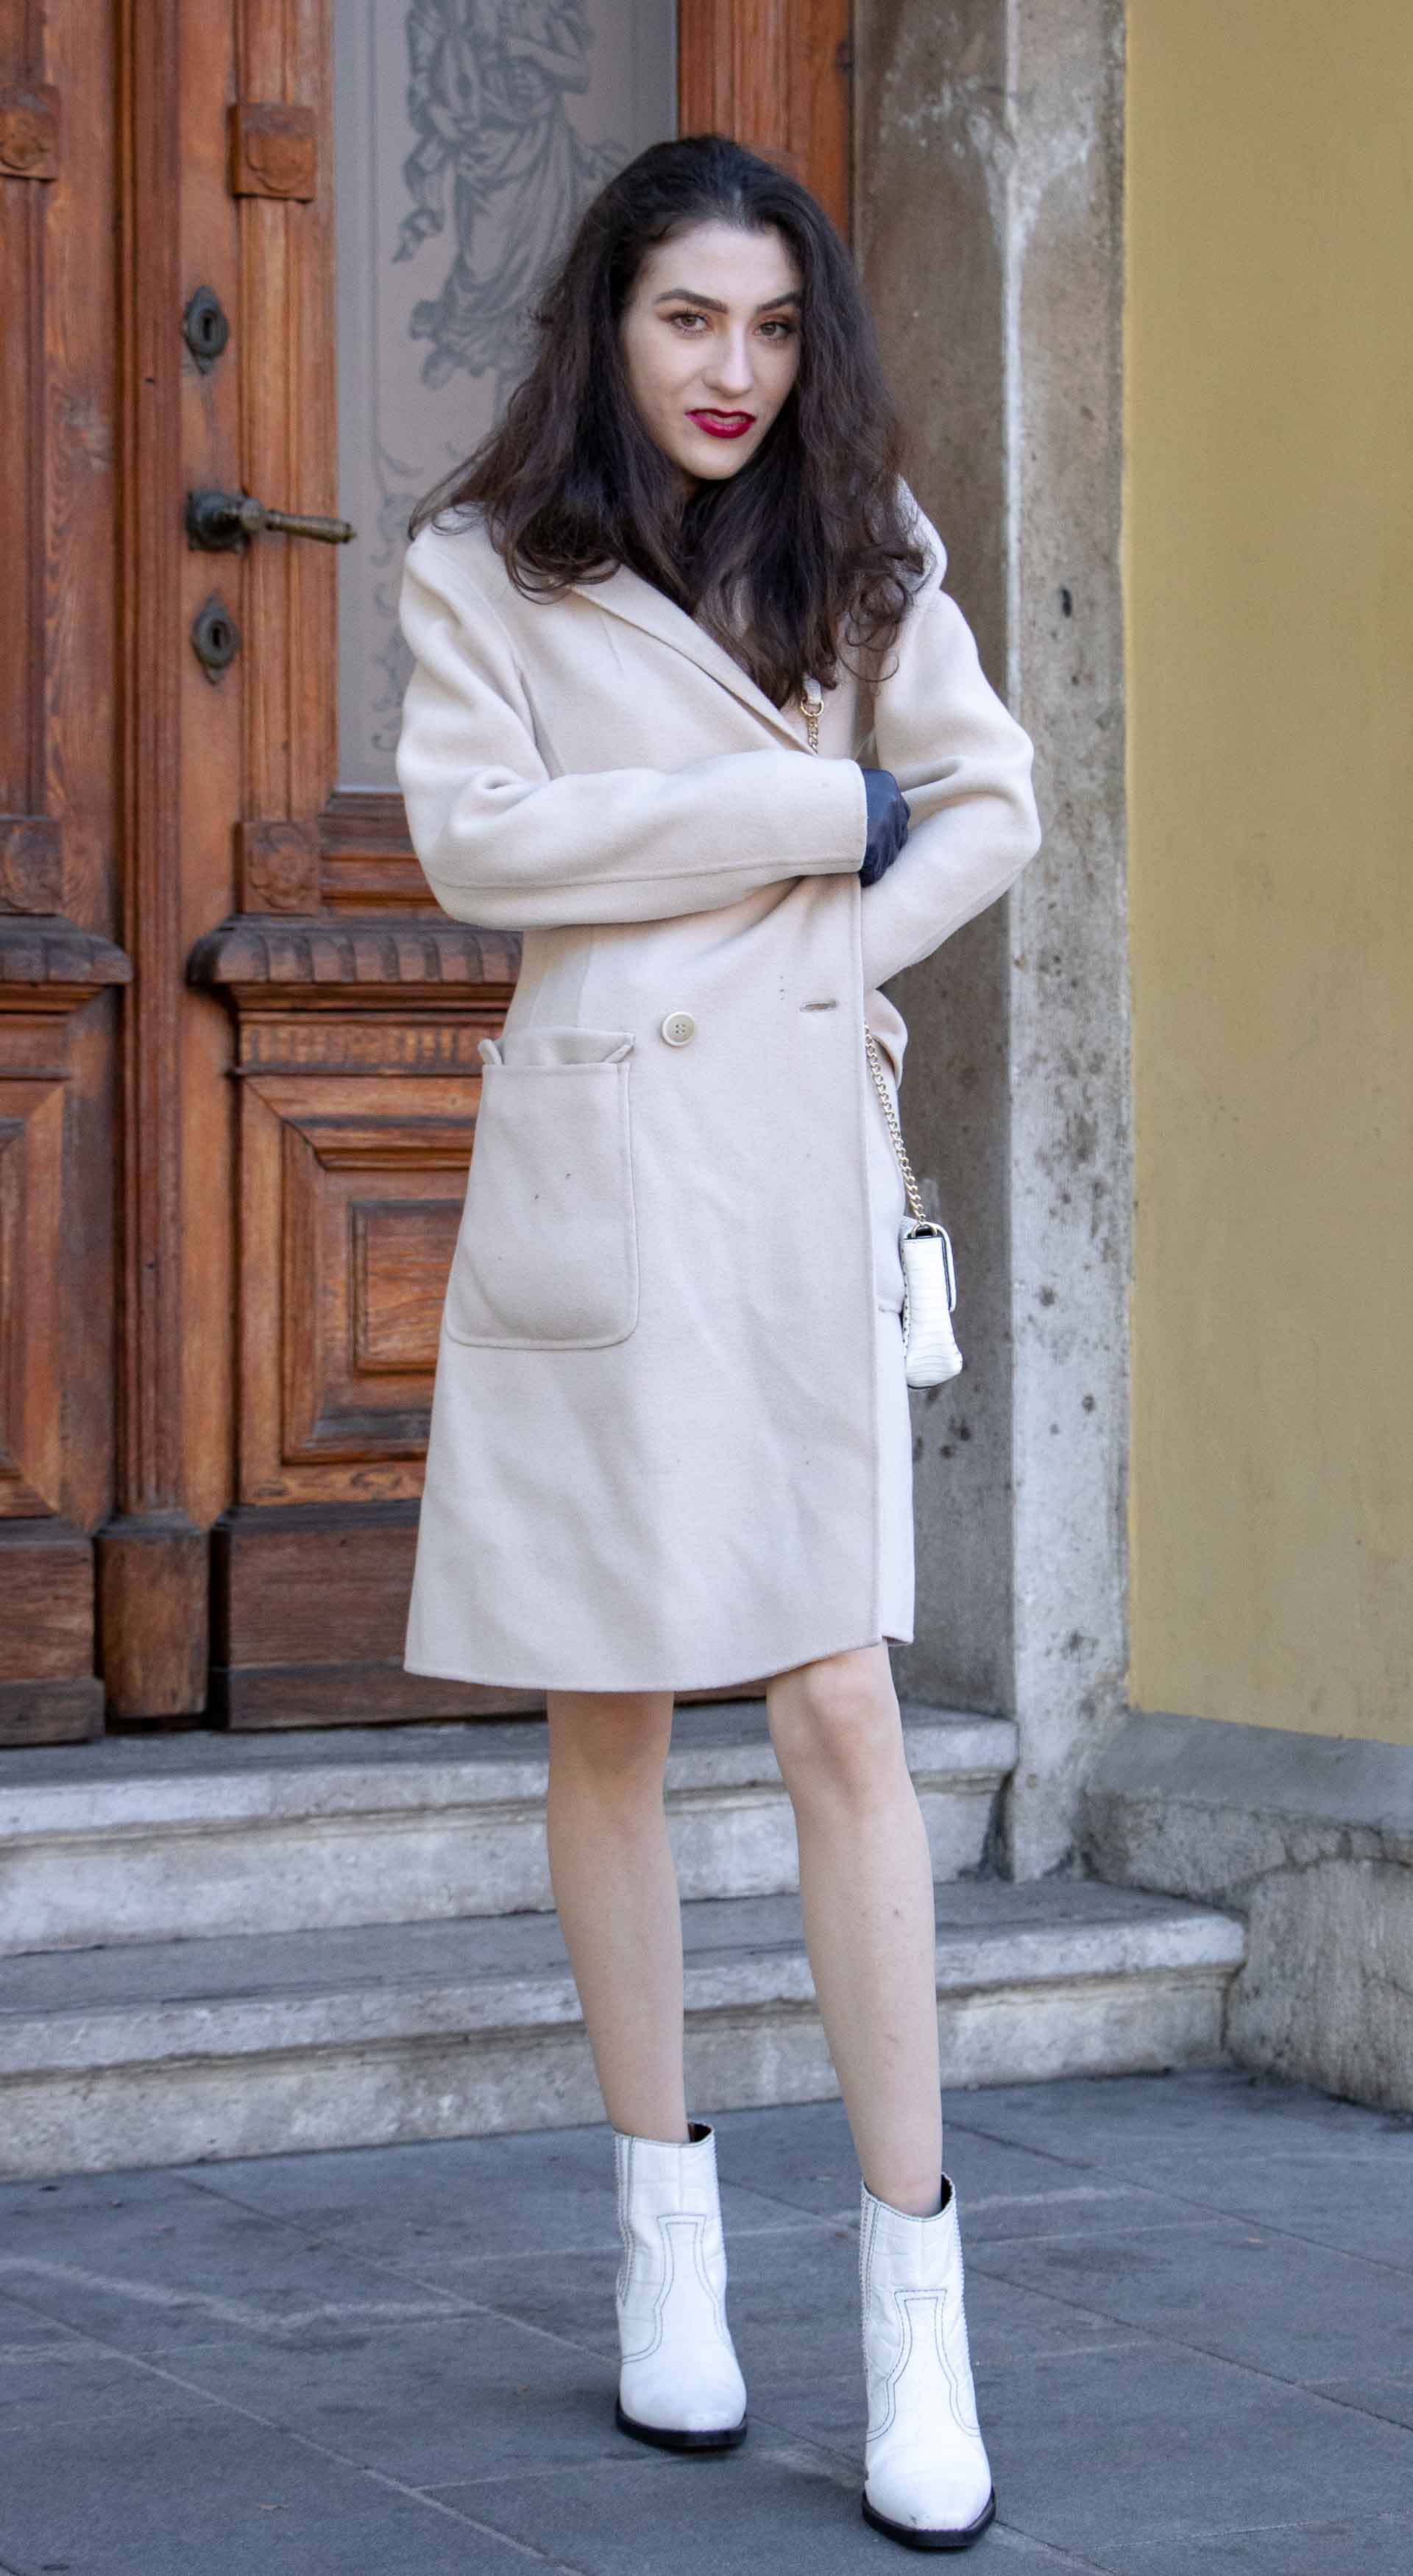 Beautiful Slovenian Fashion Blogger Veronika Lipar of Brunette from Wall dressed in off-white double breasted Max Mara coat with white Ganni cowboy boots, white chain shoulder bag in morning on the street in Ljubljana